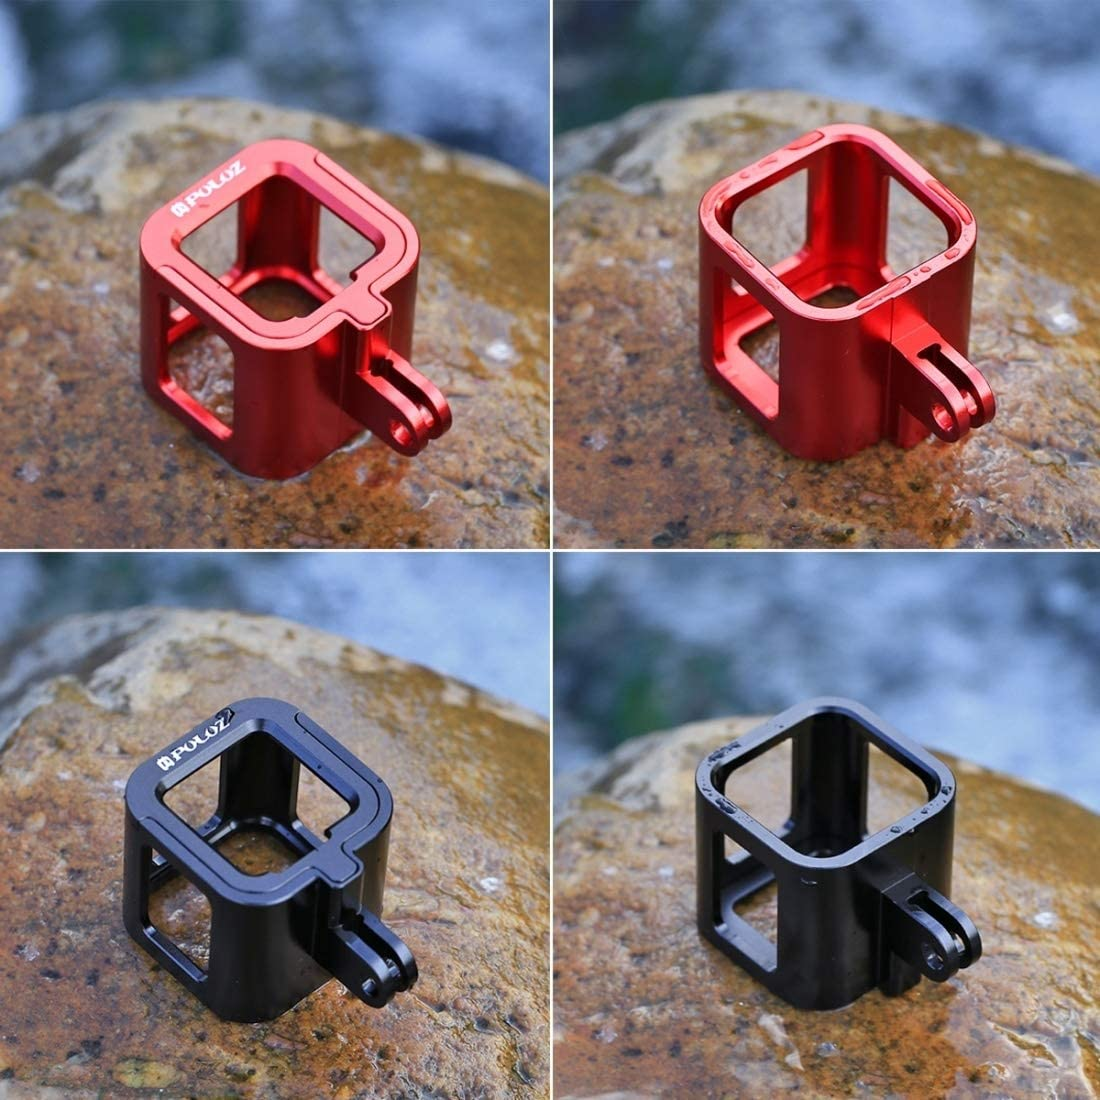 Color : Black Black YANTAIANJANE Camera Accessories 6 in 1 CNC Aluminum Alloy Housing Shell Protective Cage with Screw for GoPro HERO4 //3+